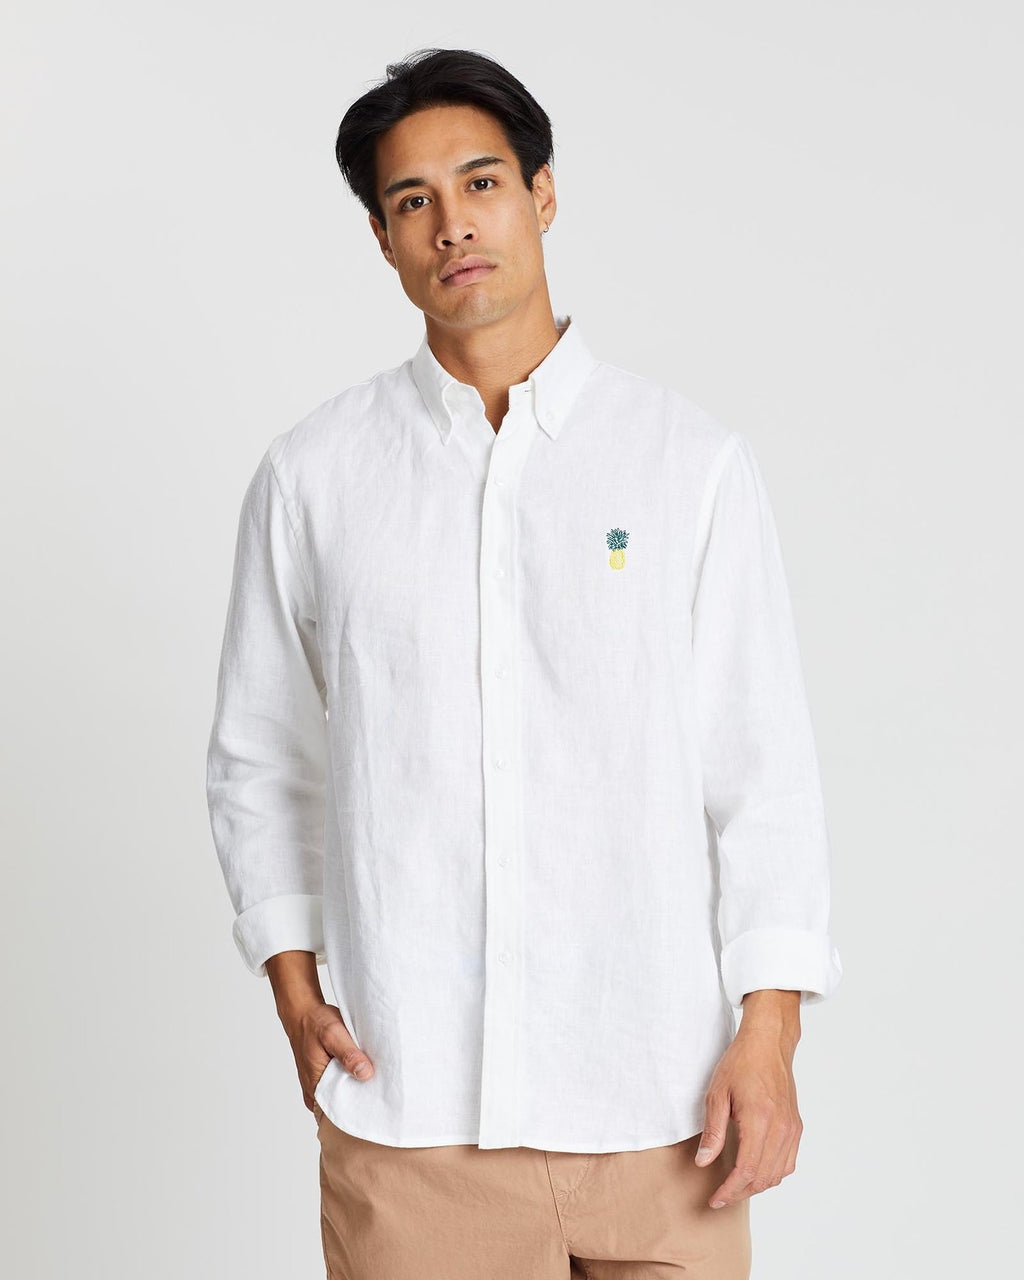 Men's Long Sleeve Linen Shirt - White